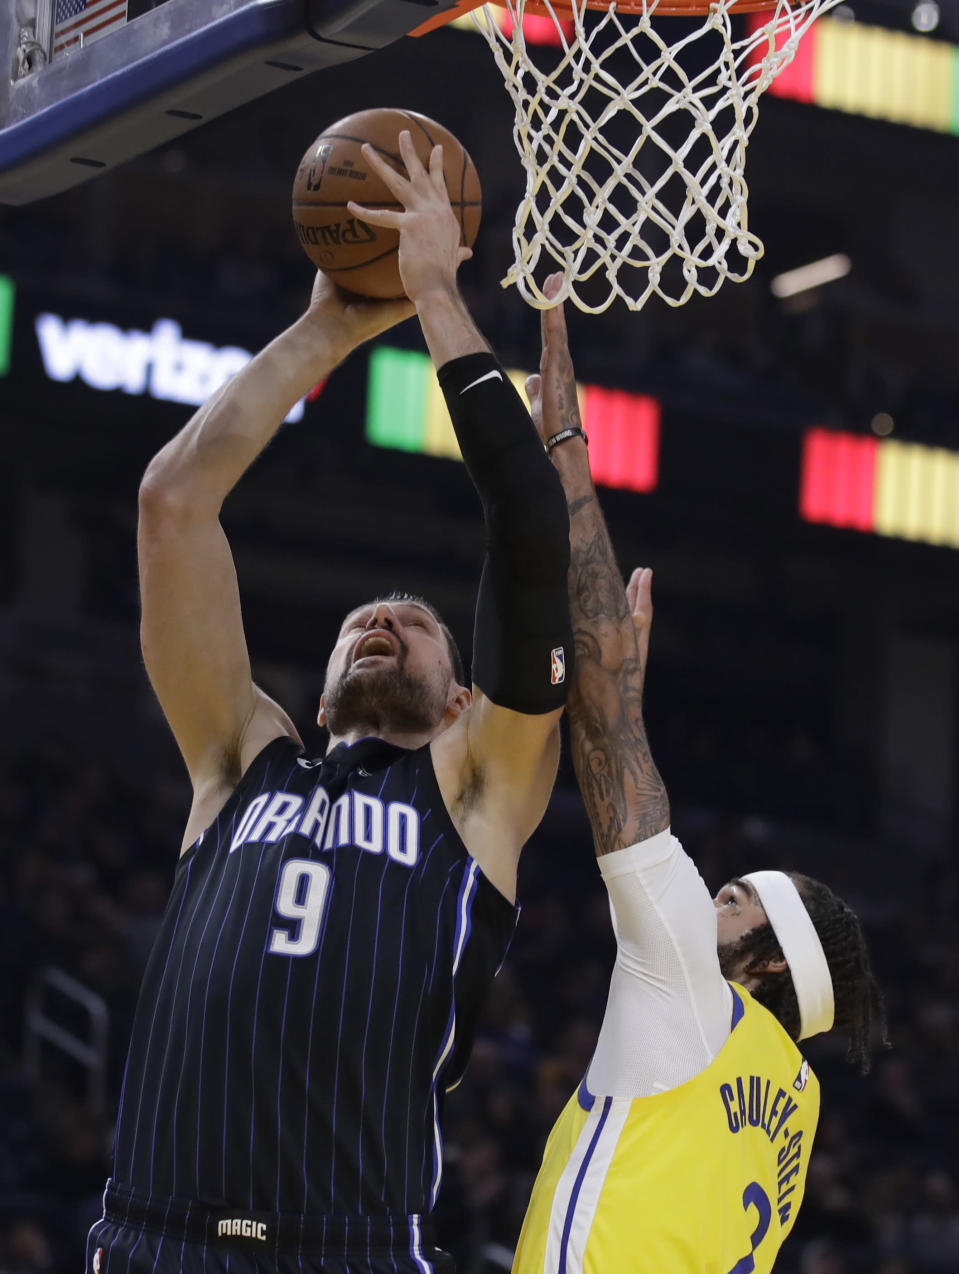 Orlando Magic's Nikola Vucevic (9) shoots against Golden State Warriors' Willie Cauley-Stein during the first half of an NBA basketball game Saturday, Jan. 18, 2020, in San Francisco. (AP Photo/Ben Margot)